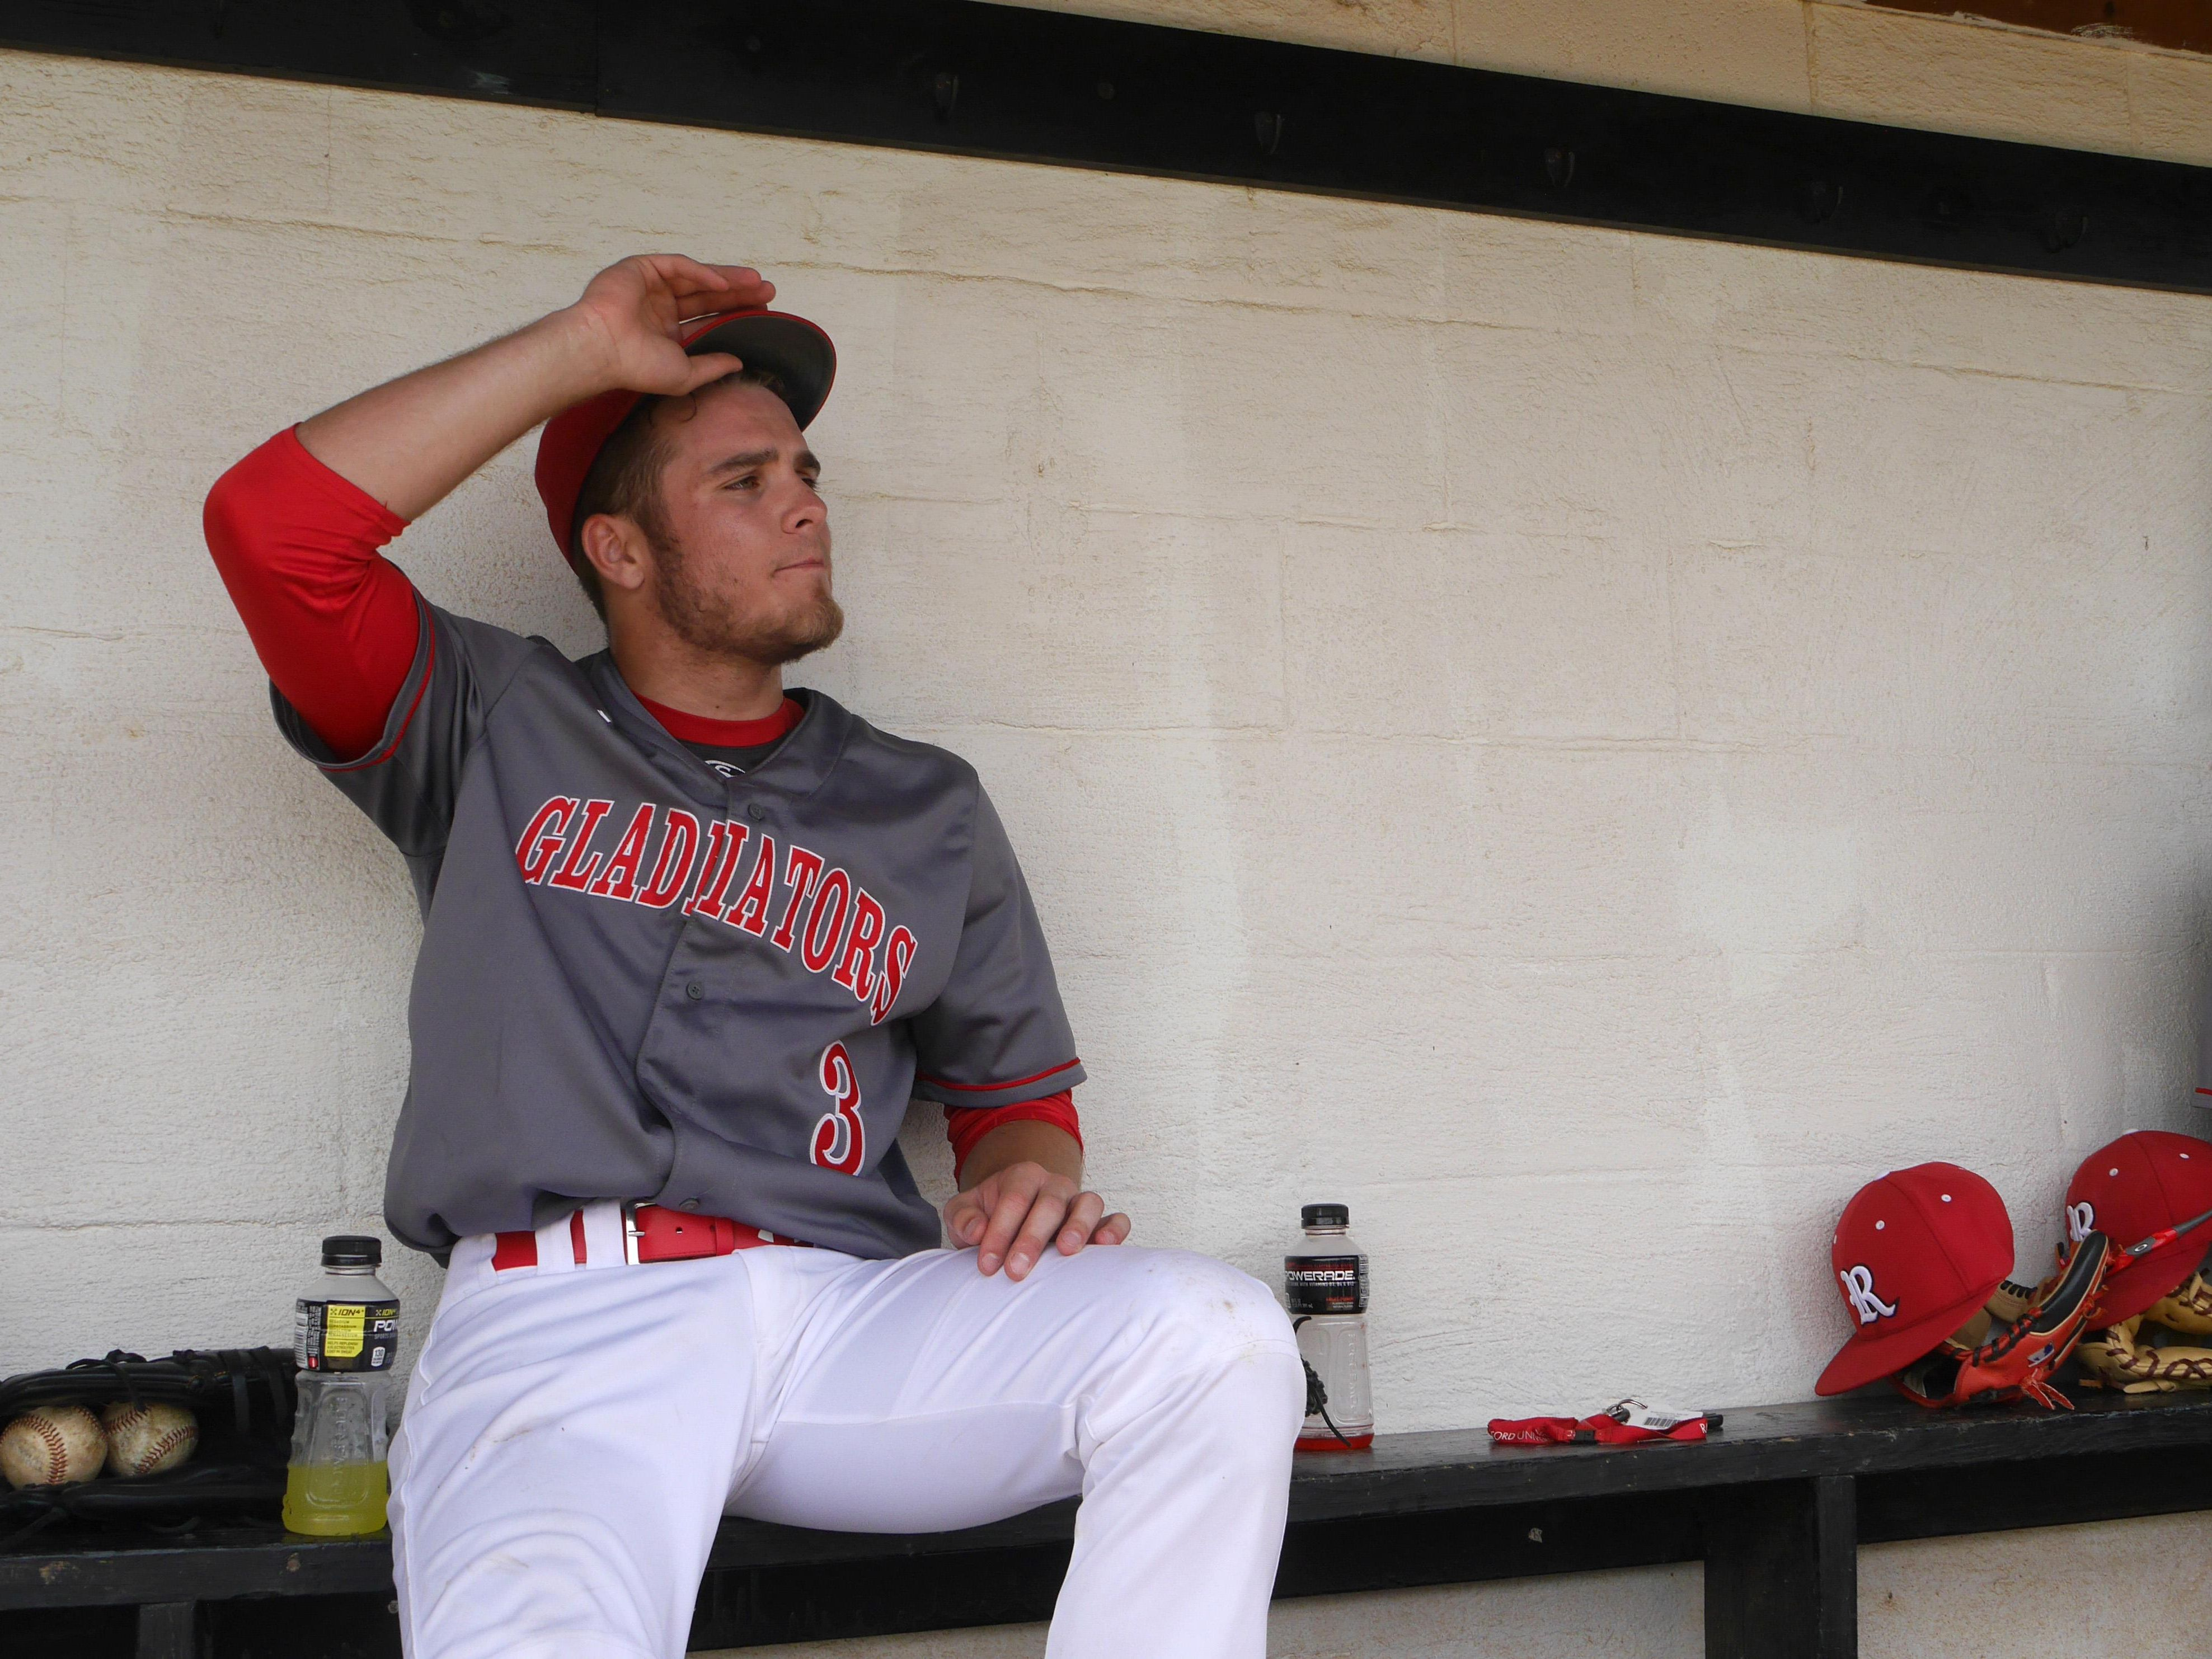 Riverheads #3, Colt Miller watches Riverheads bat against Luray from the dugout on Monday, May 30, 2016 at Riverheads High School. Miller pitched a complete game giving Riverheads the win over Luray 3-1 to advance in the playoffs.